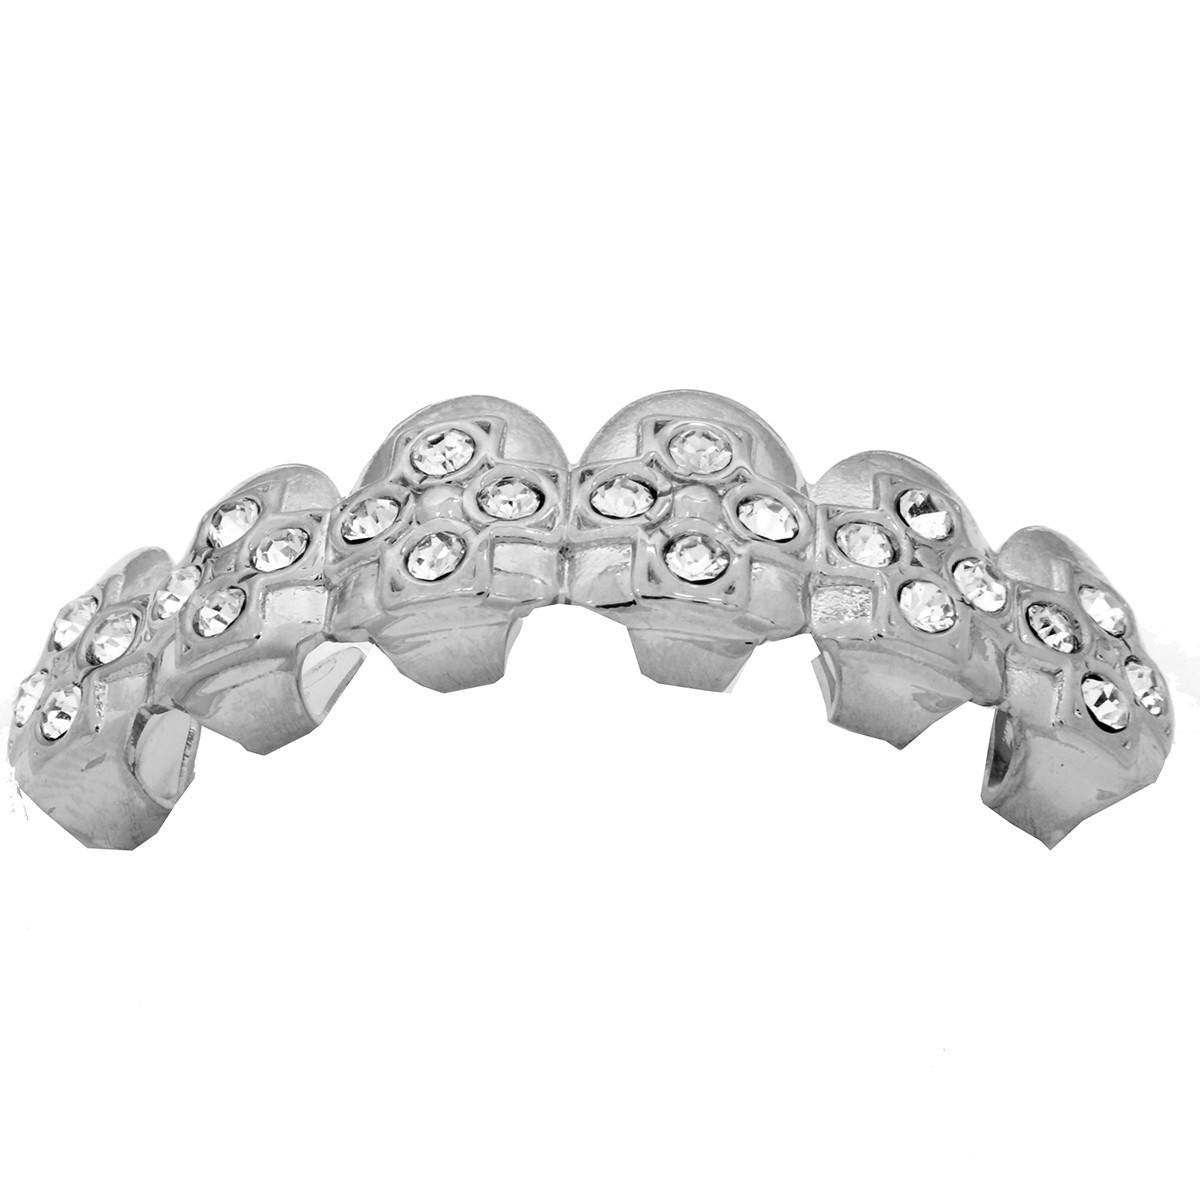 SILVER TOP GRILLZ CROSS